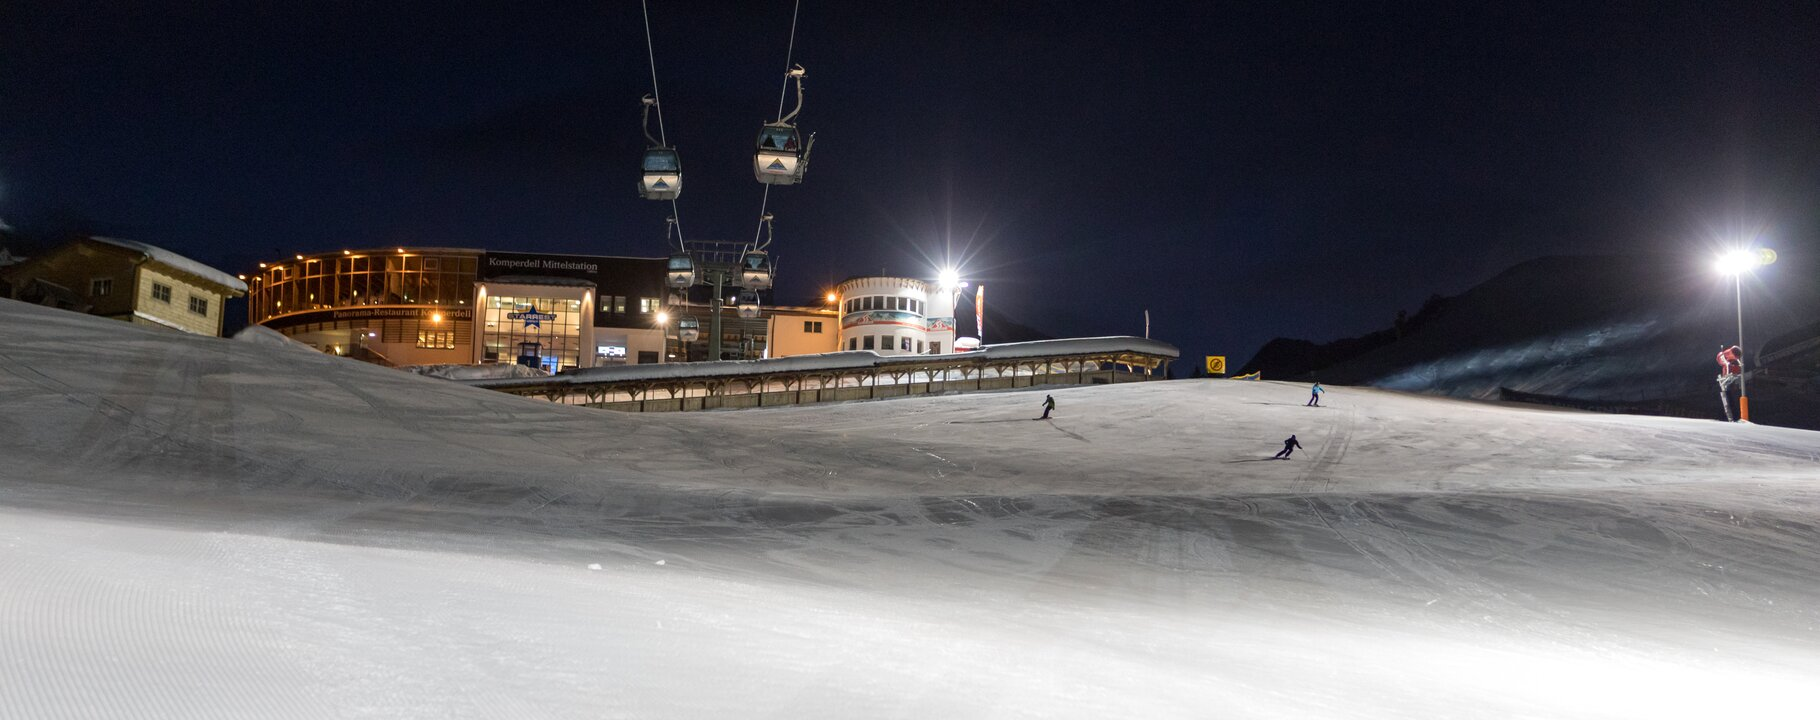 Nighttime skiing in Serfaus-Fiss-Ladis | © Andreas Kirschner